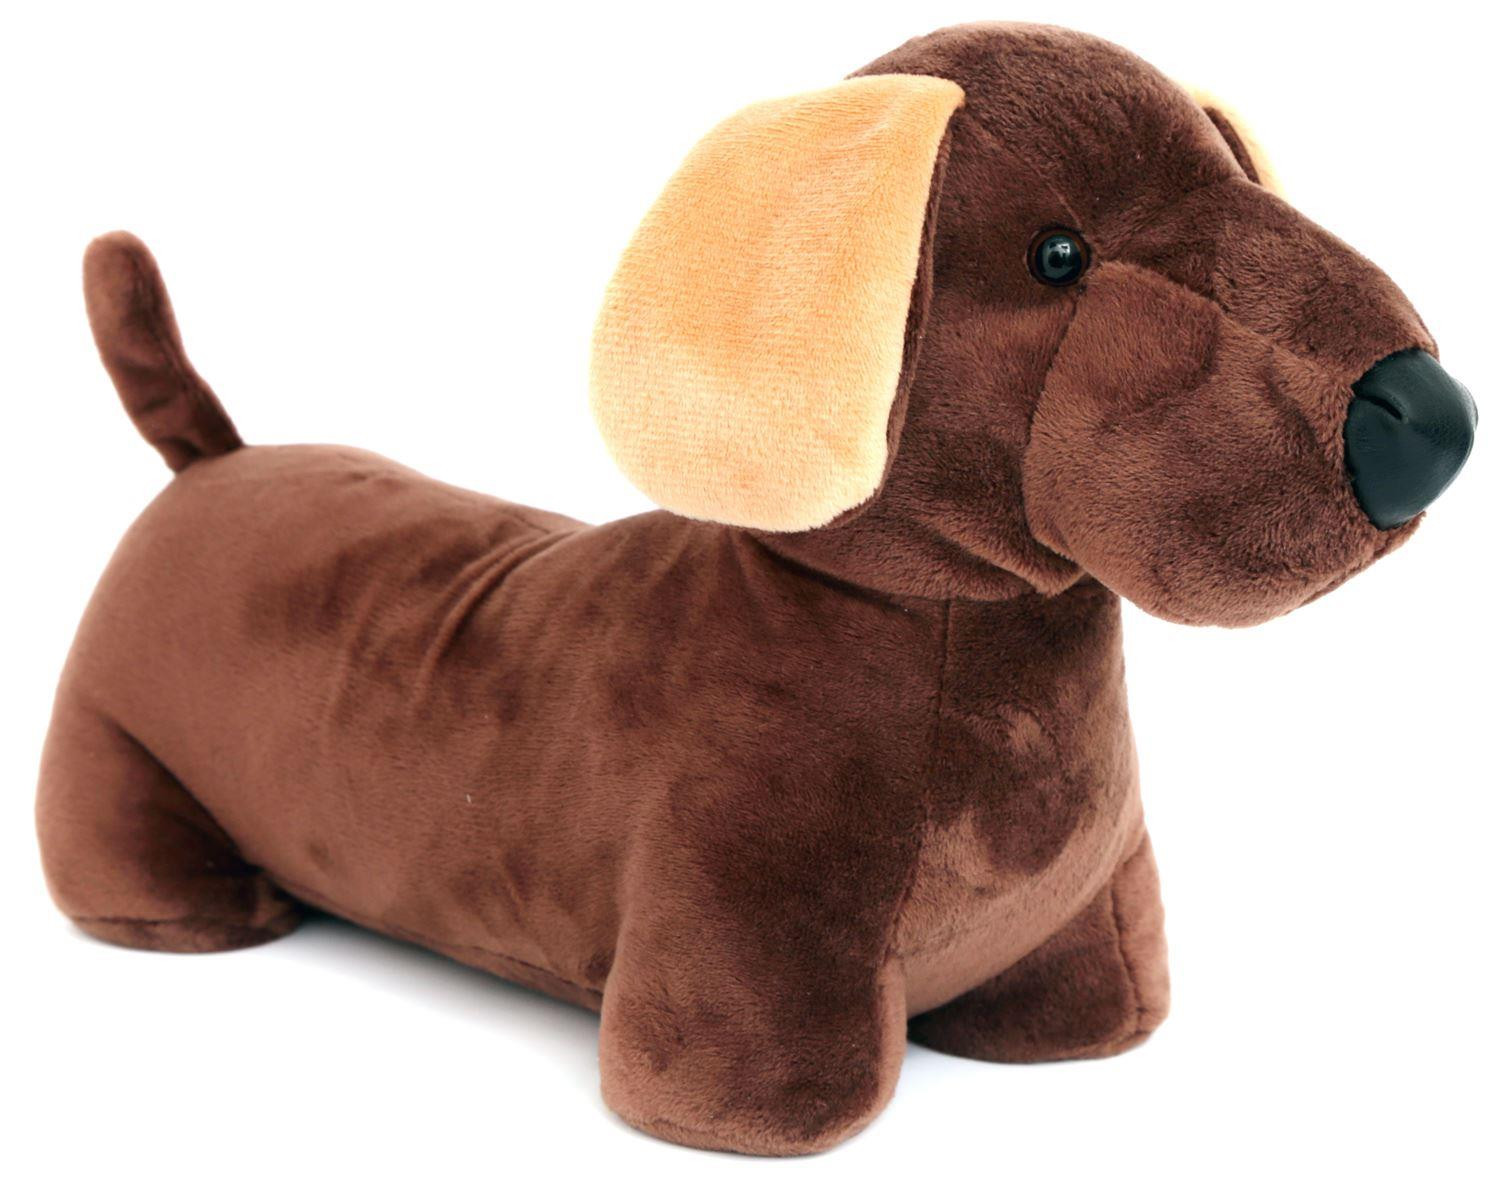 Animal Door Stops Uk Adorable Sausage Dog Dachshund Puppy Doorstop Novelty Animal Door Stop Brown